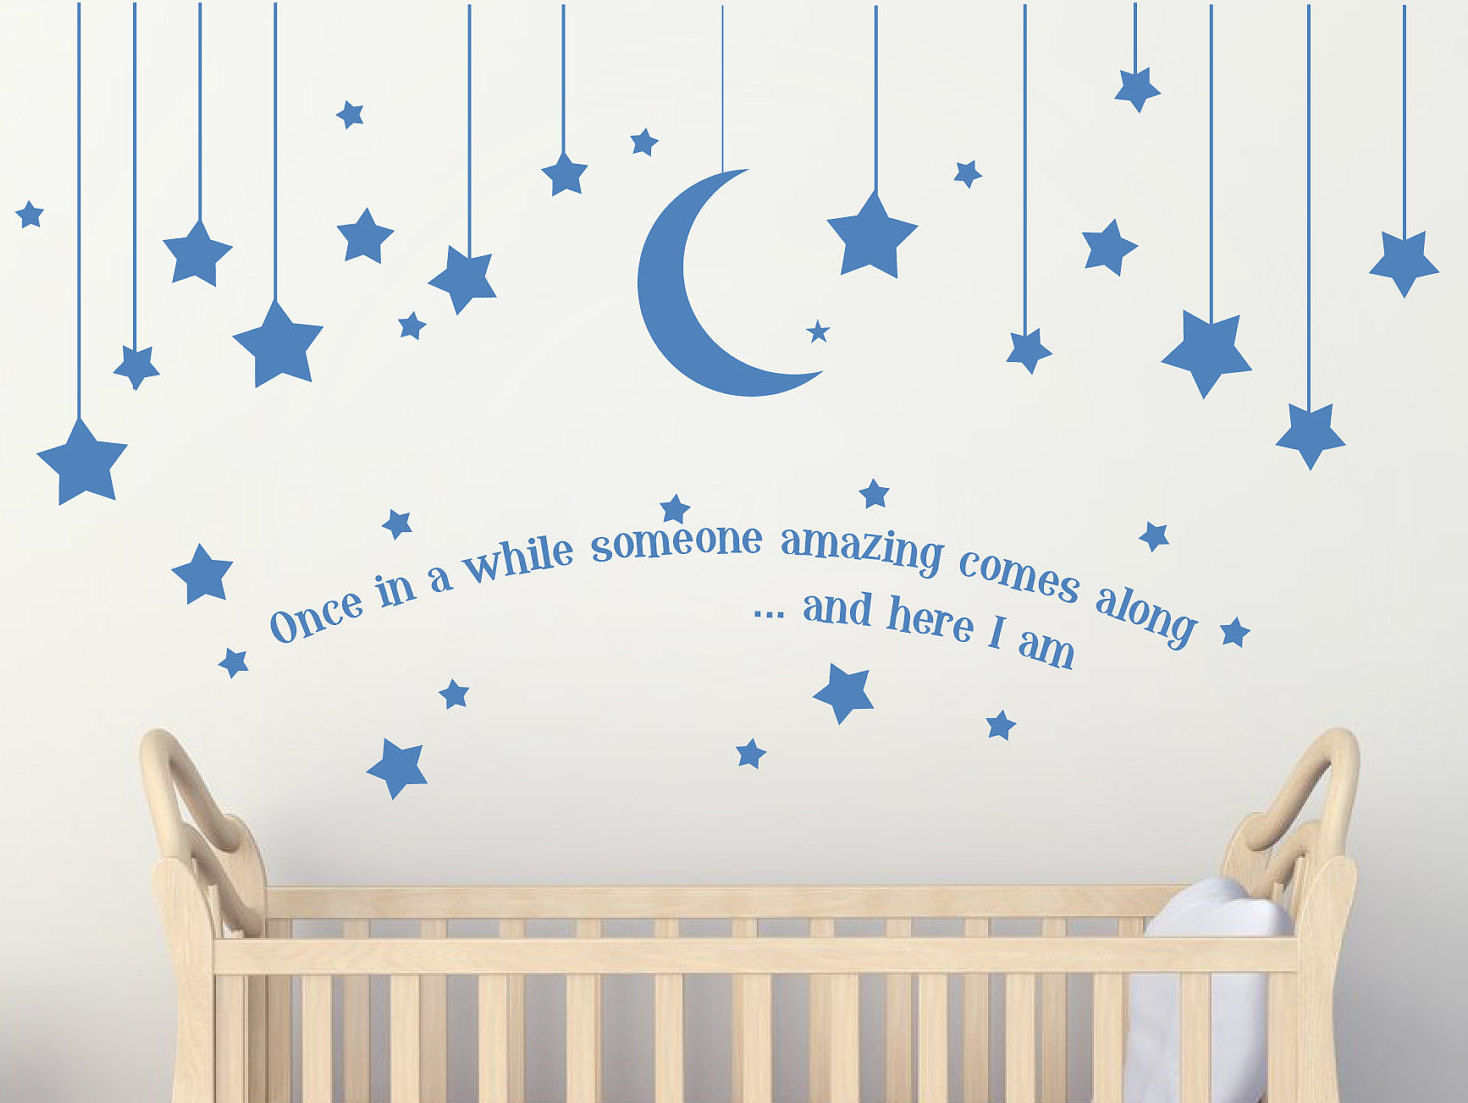 Most Popular Wall Stickers to the Children's Room